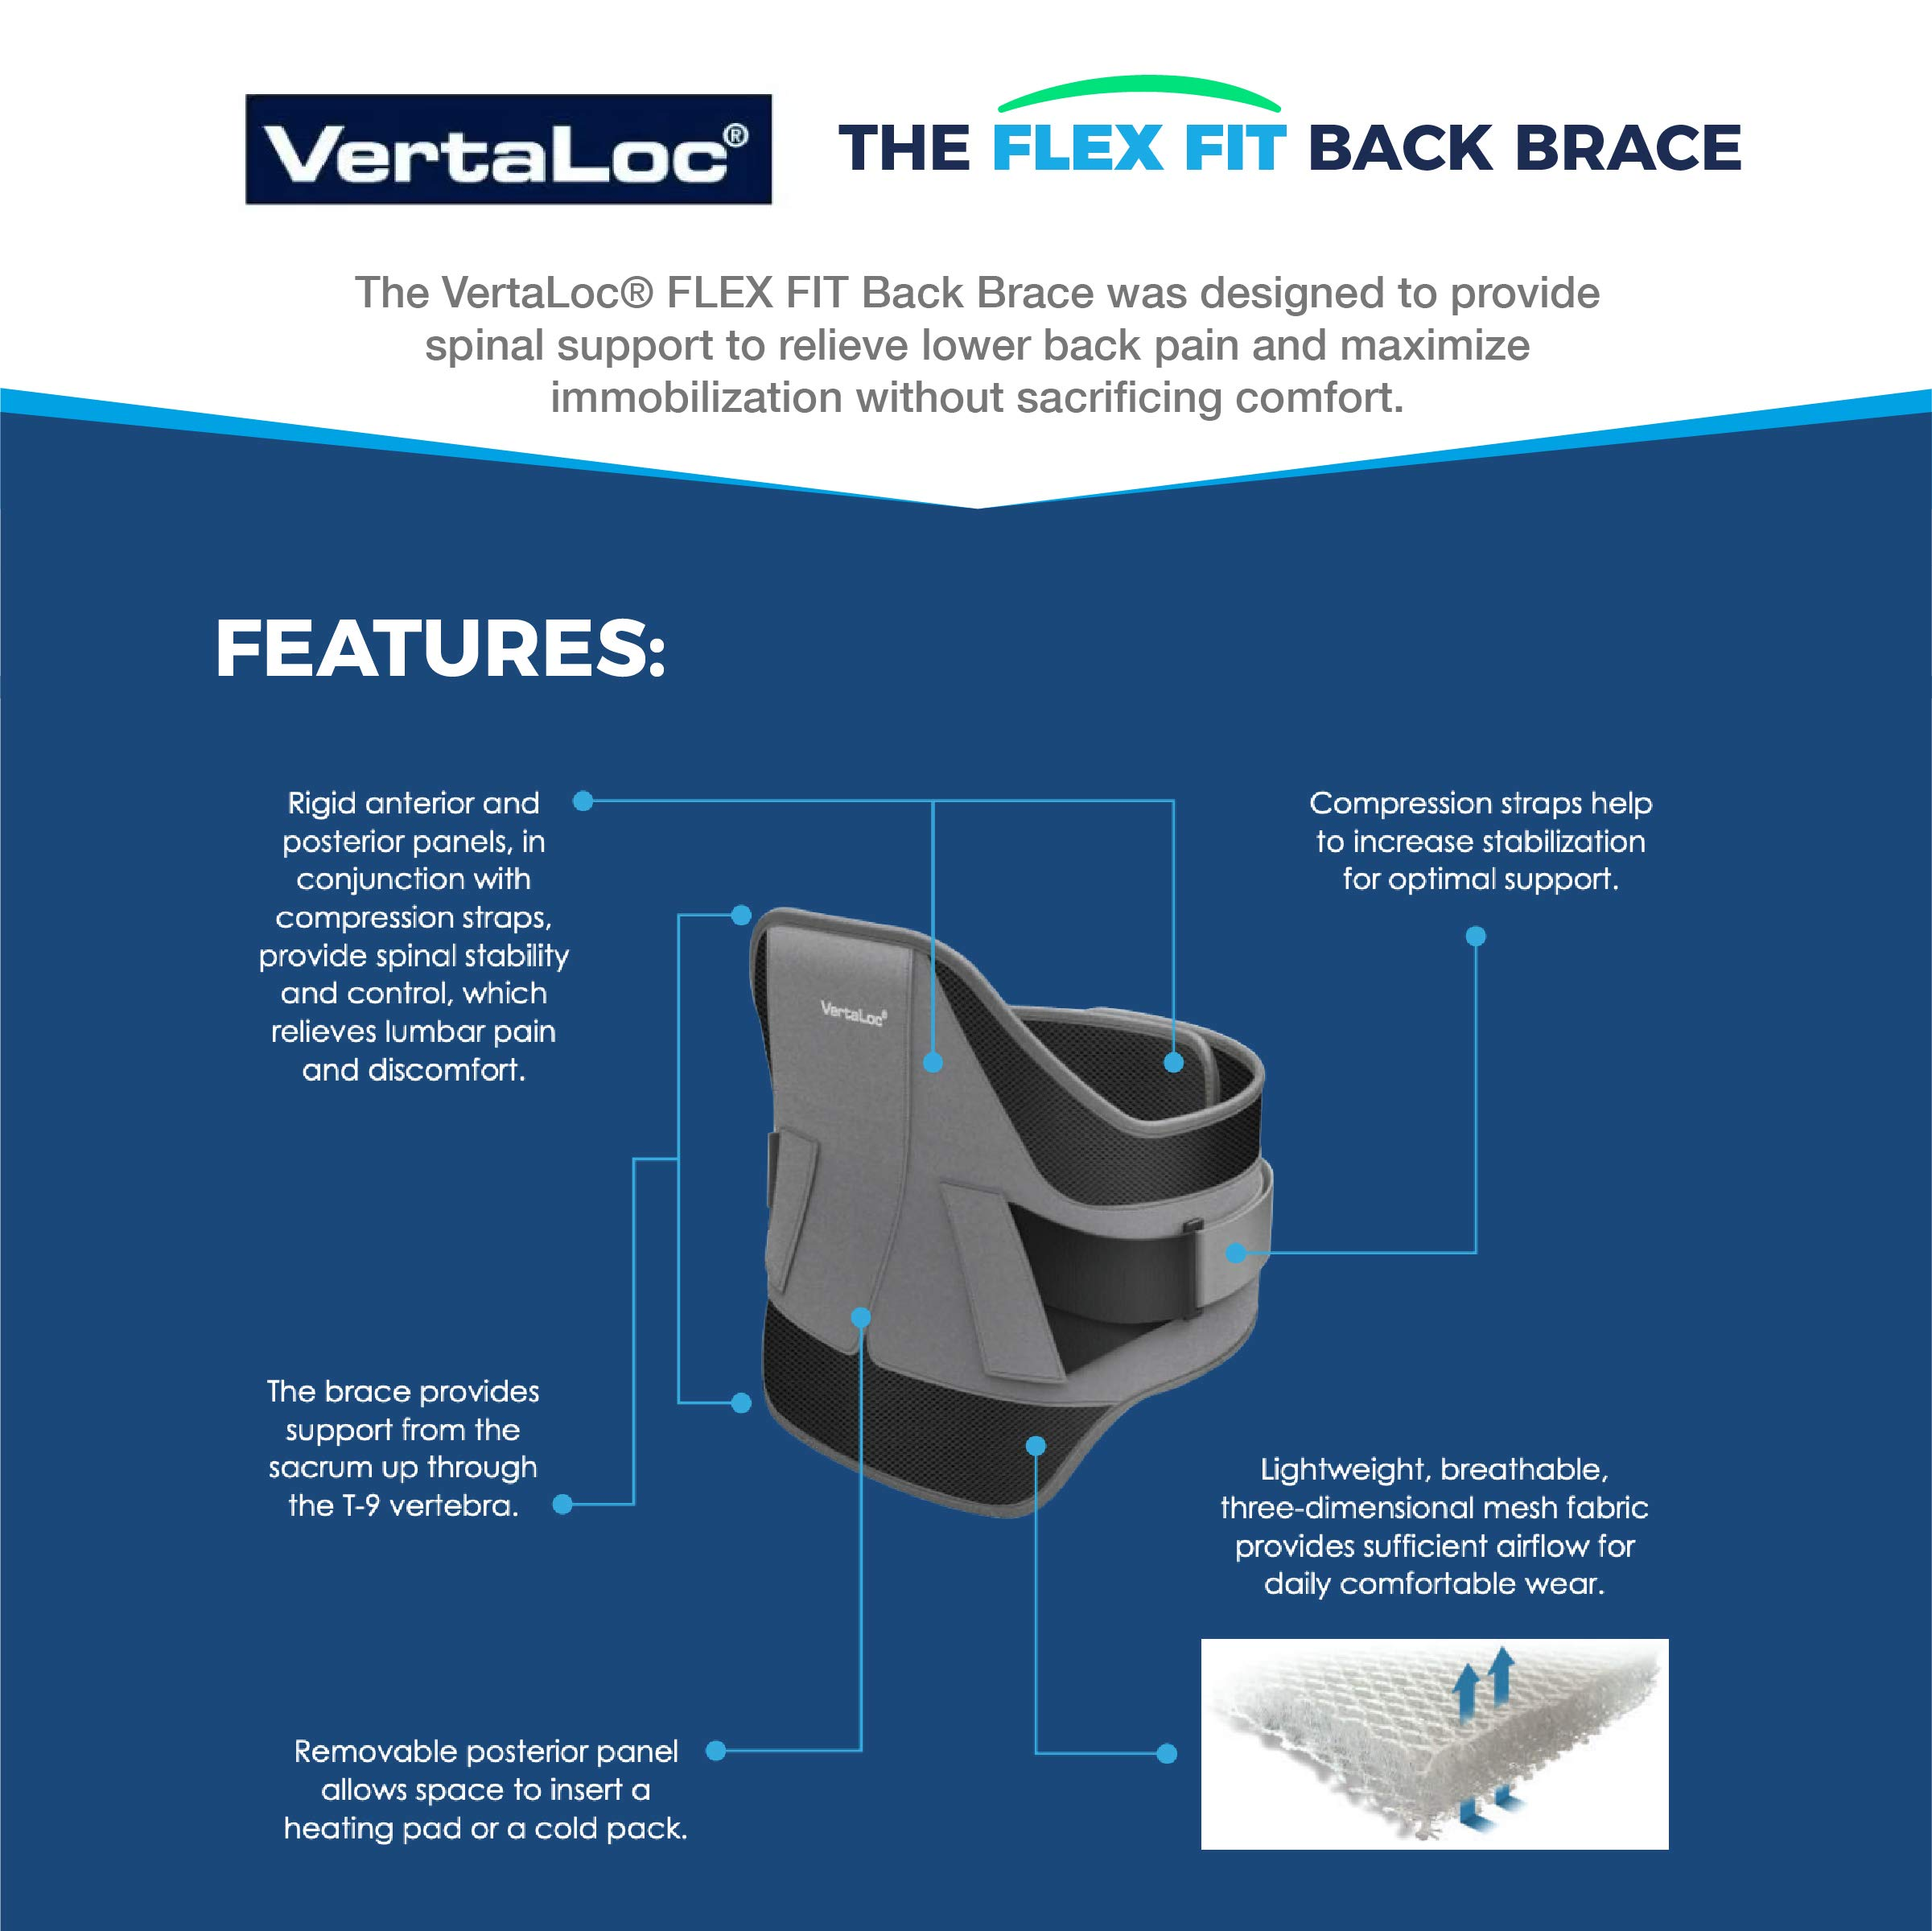 VertaLoc Flex FIT Medical Grade Back Brace and Support for Lower Back Pain - Extra Large by VERTALOC, INC. (Image #4)